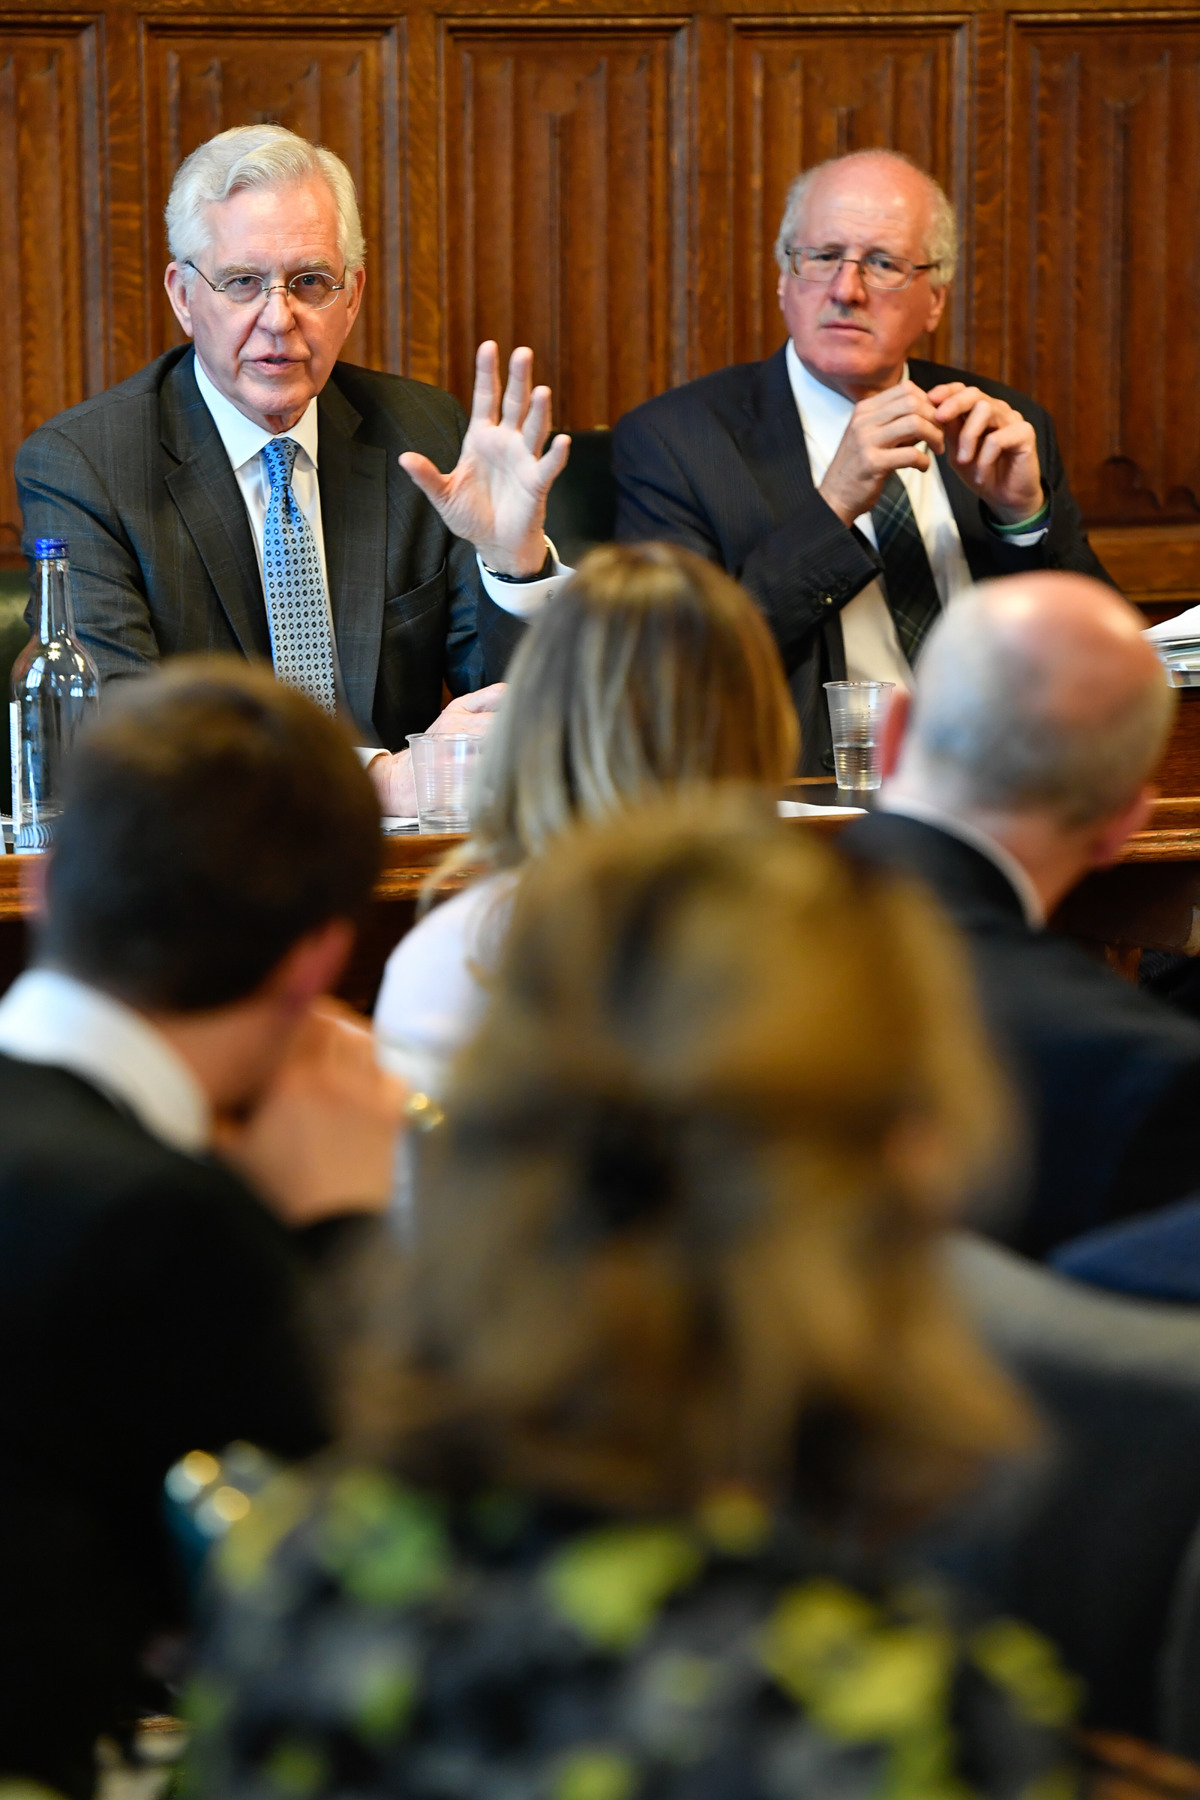 Elder D. Todd Christofferson of the Quorum of the Twelve Apostles speaks during the All-Party Parliamentary Group meeting held at the United Kingdom Parliament on May 1.